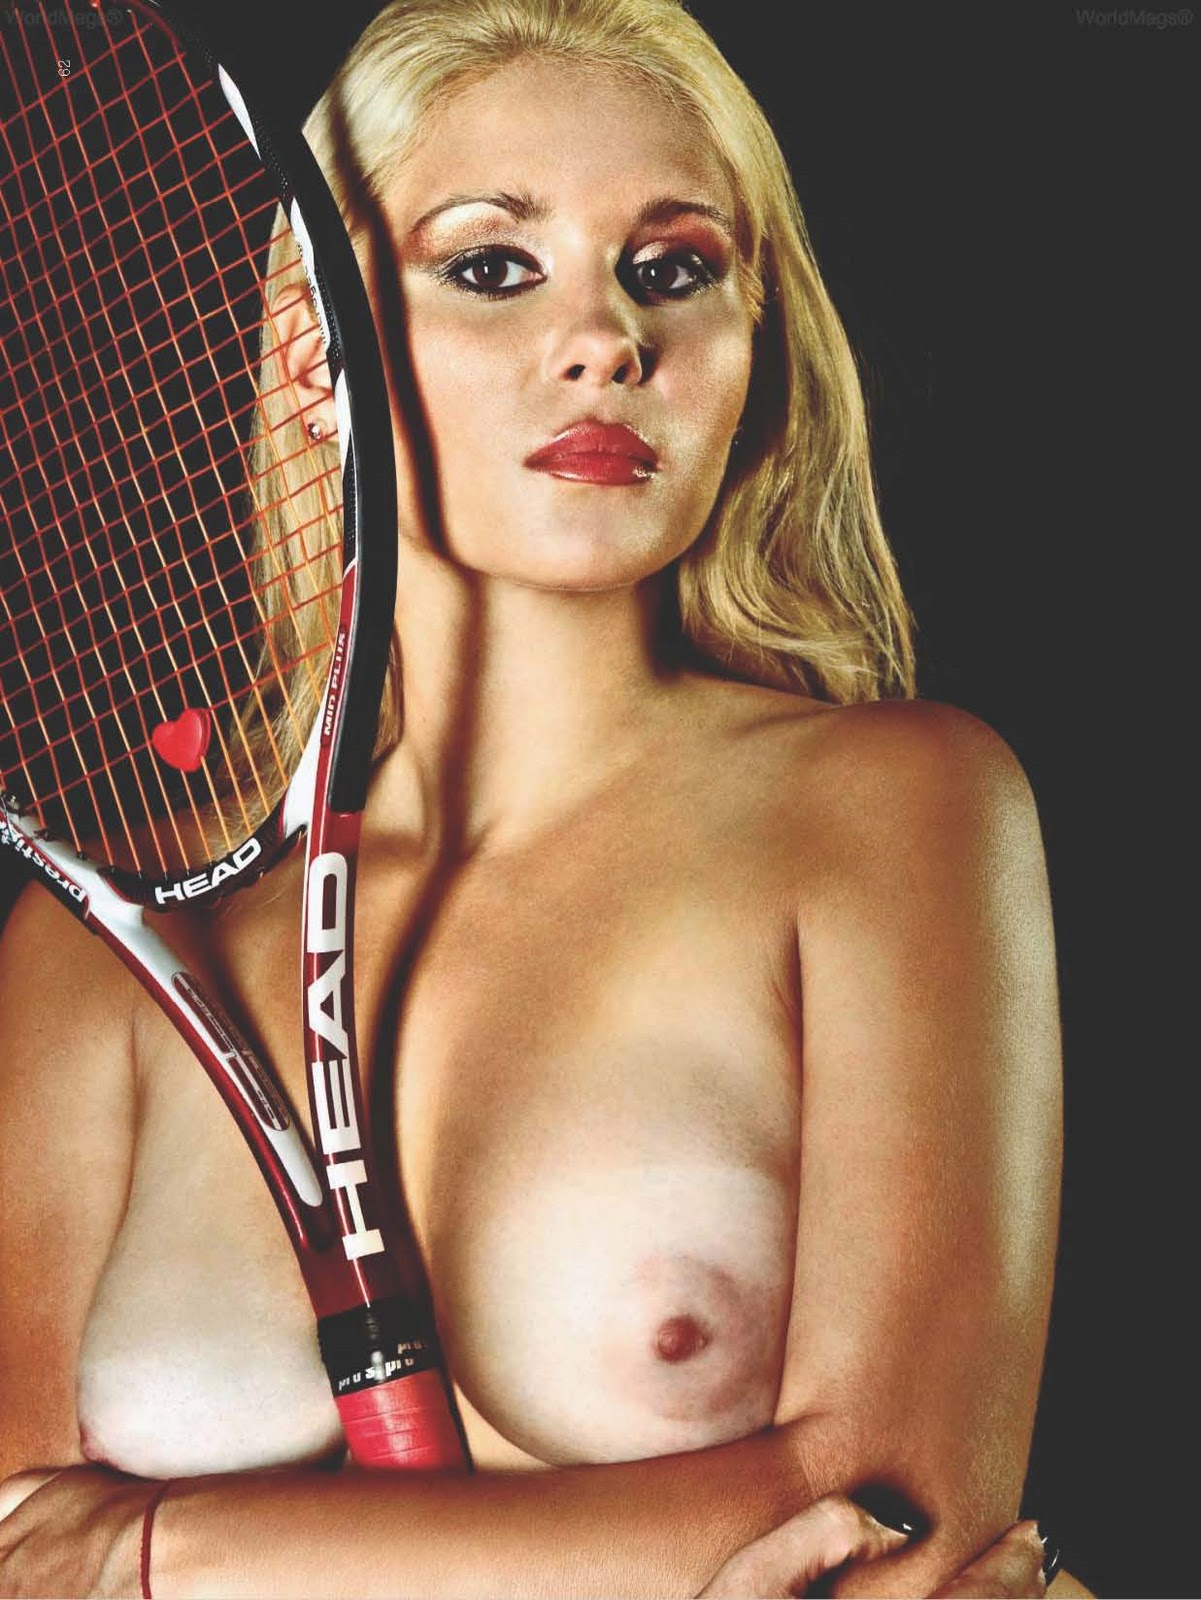 Nude Tennis Players Female